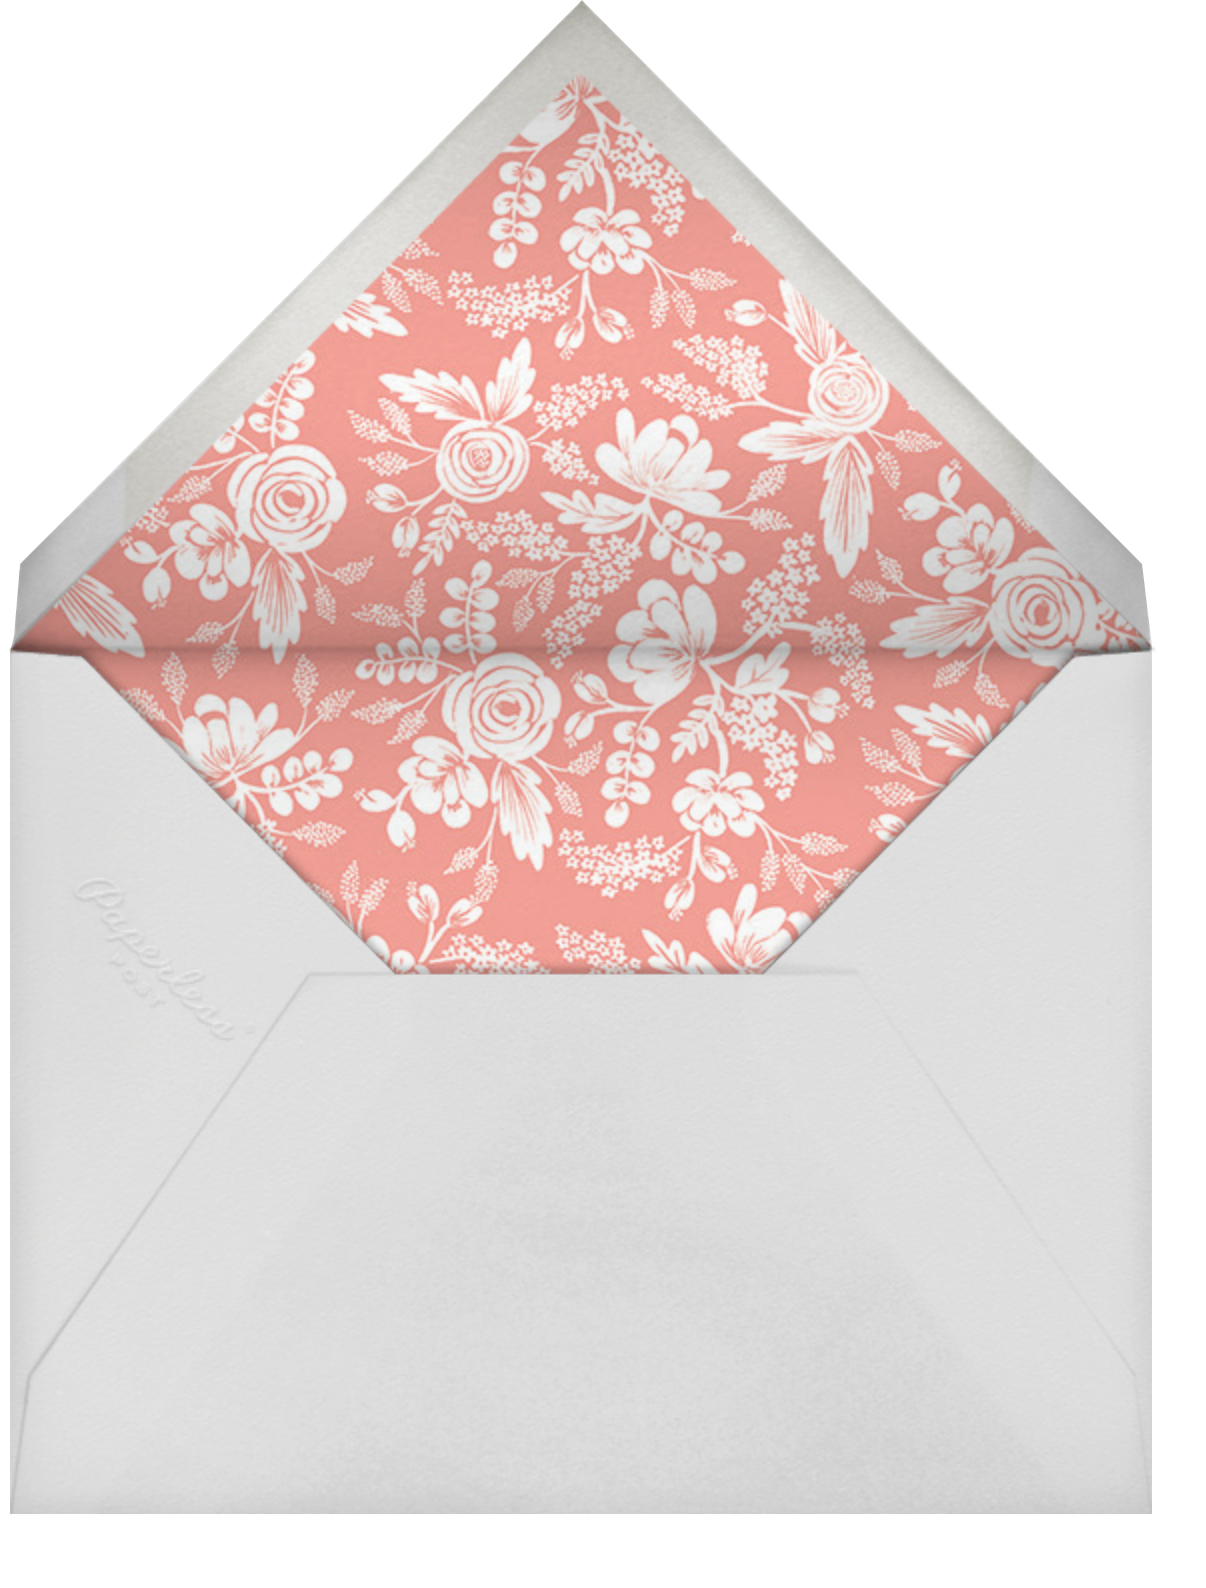 Heather and Lace (Square) - Silver - Rifle Paper Co. - Baby shower - envelope back